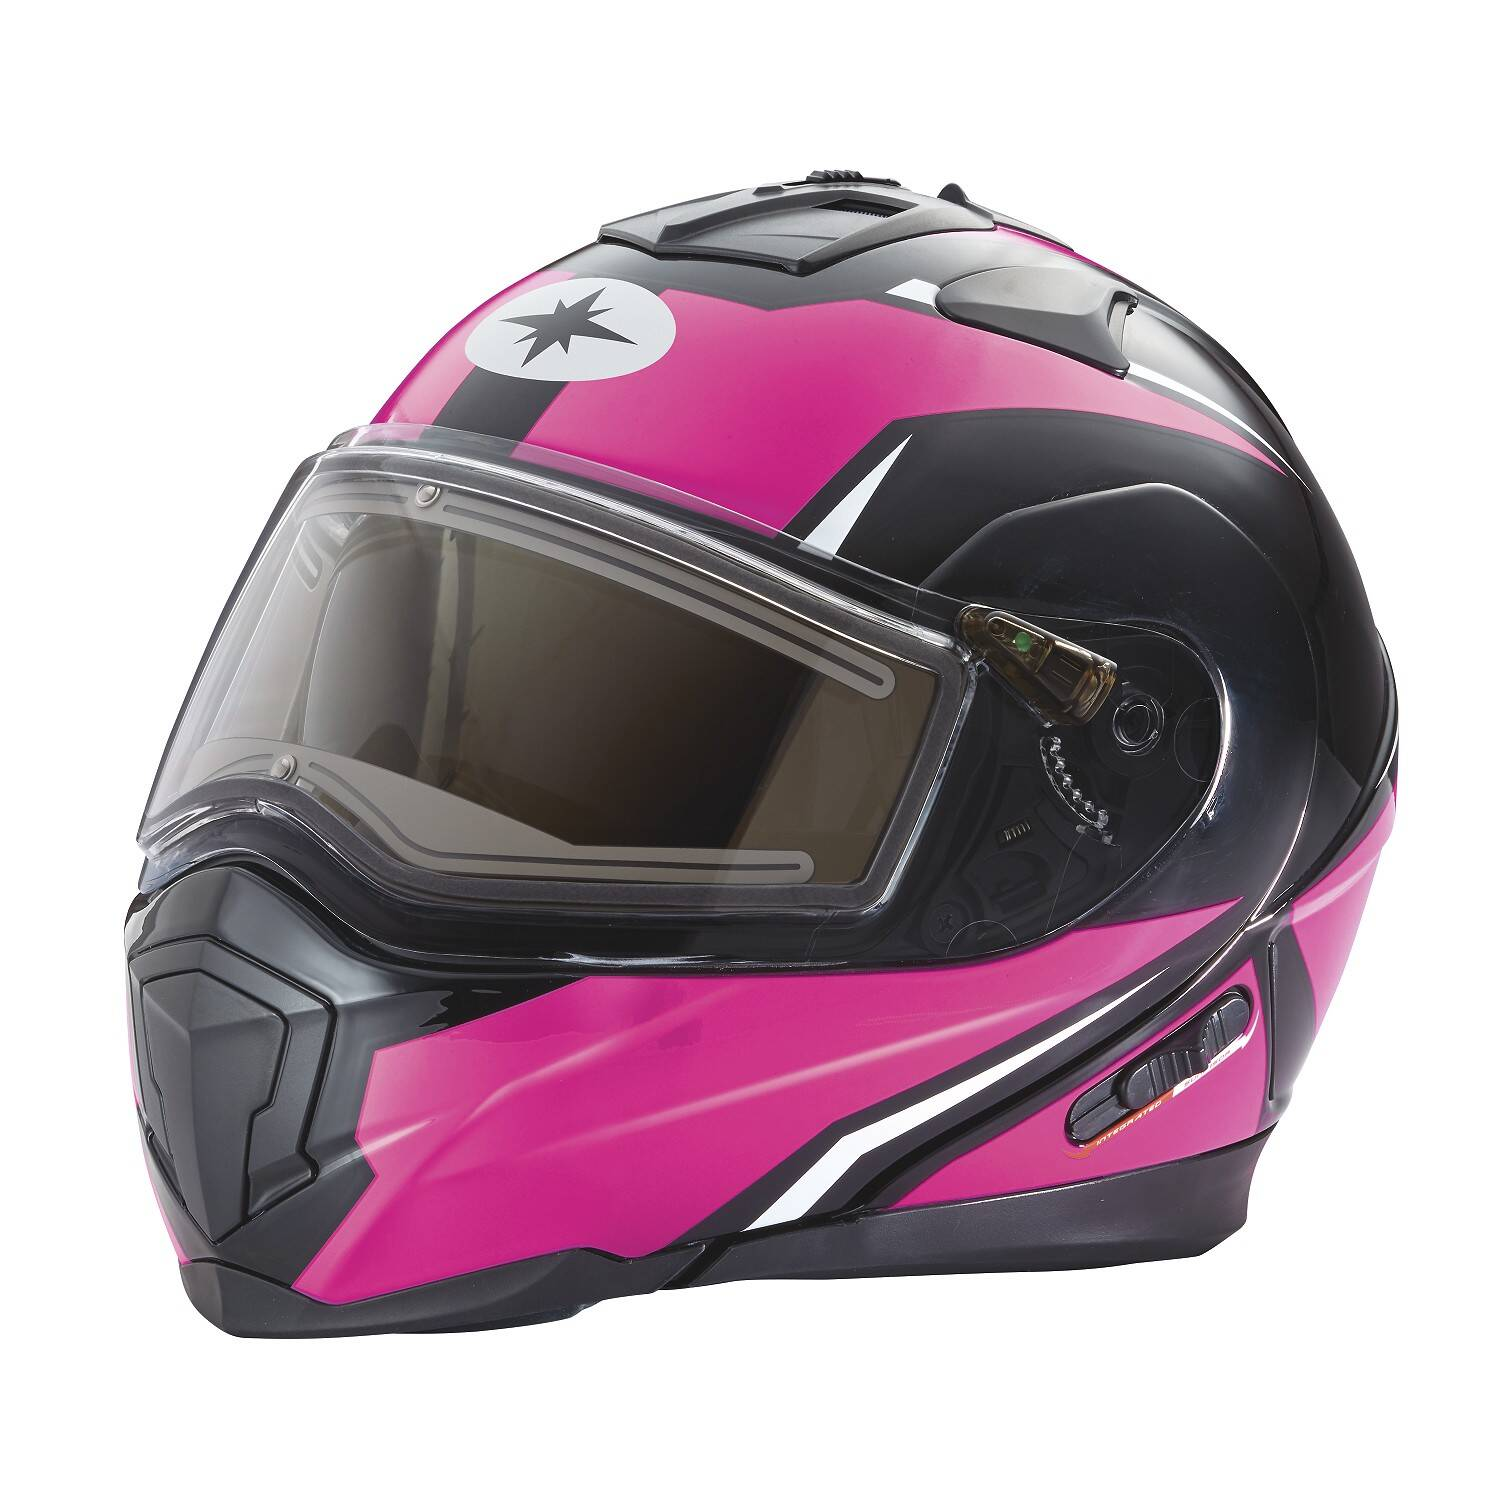 Modular 2.0 Adult Helmet with Electric Shield, Black/Pink